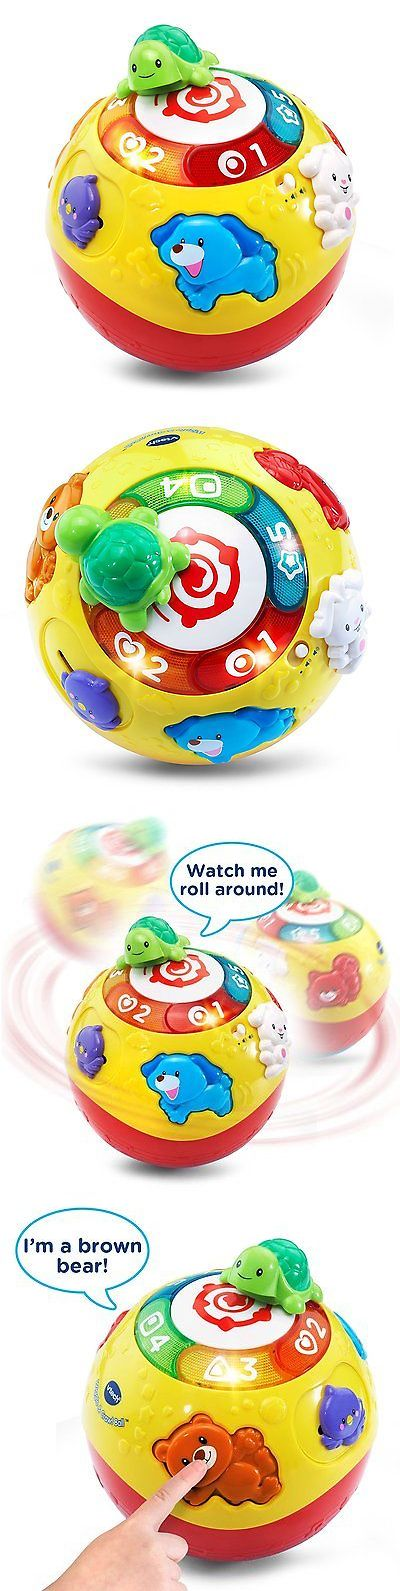 Toys for Baby 19068: Vtech Wiggle And Crawl Ball Baby Toddler Educational Learning Music Toy Gift New -> BUY IT NOW ONLY: $44.73 on eBay!